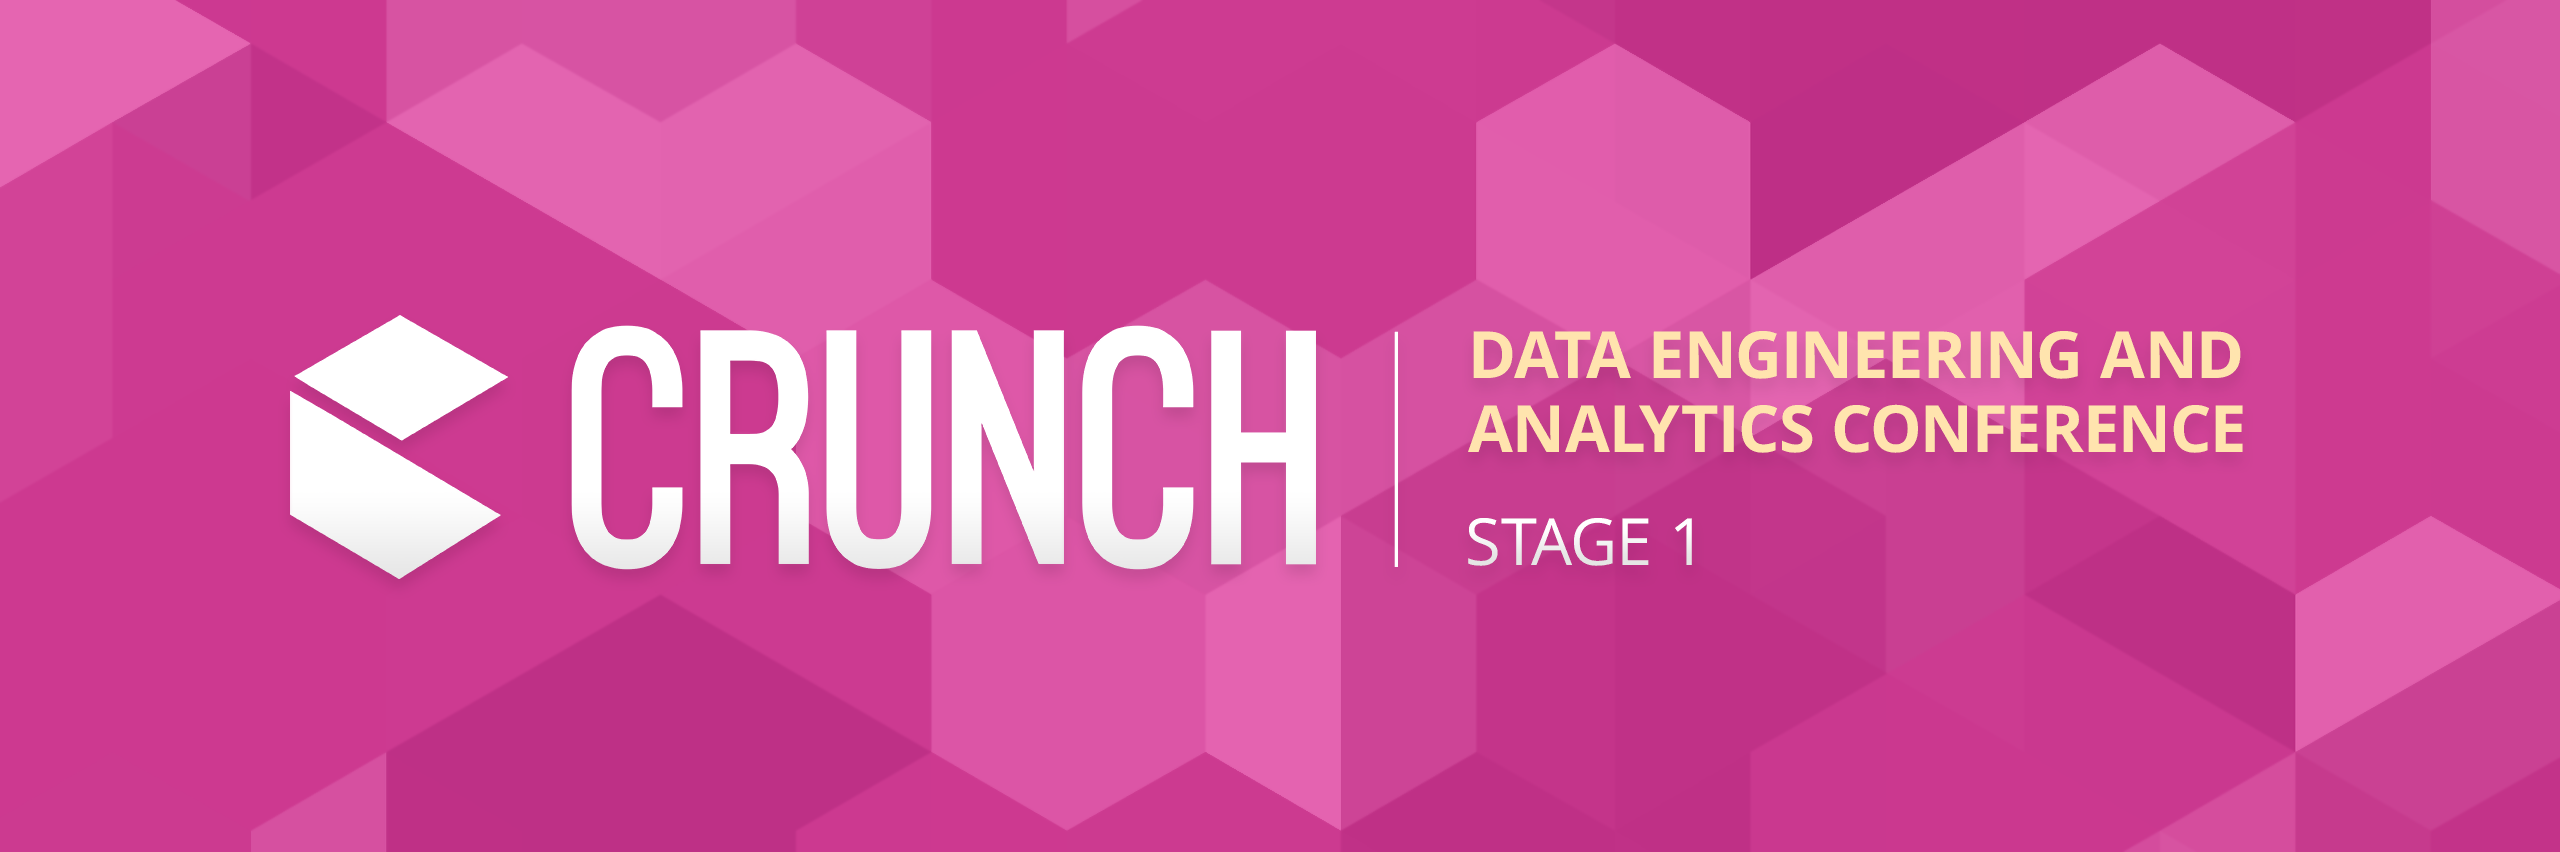 Crunch Data Conference - Stage 1